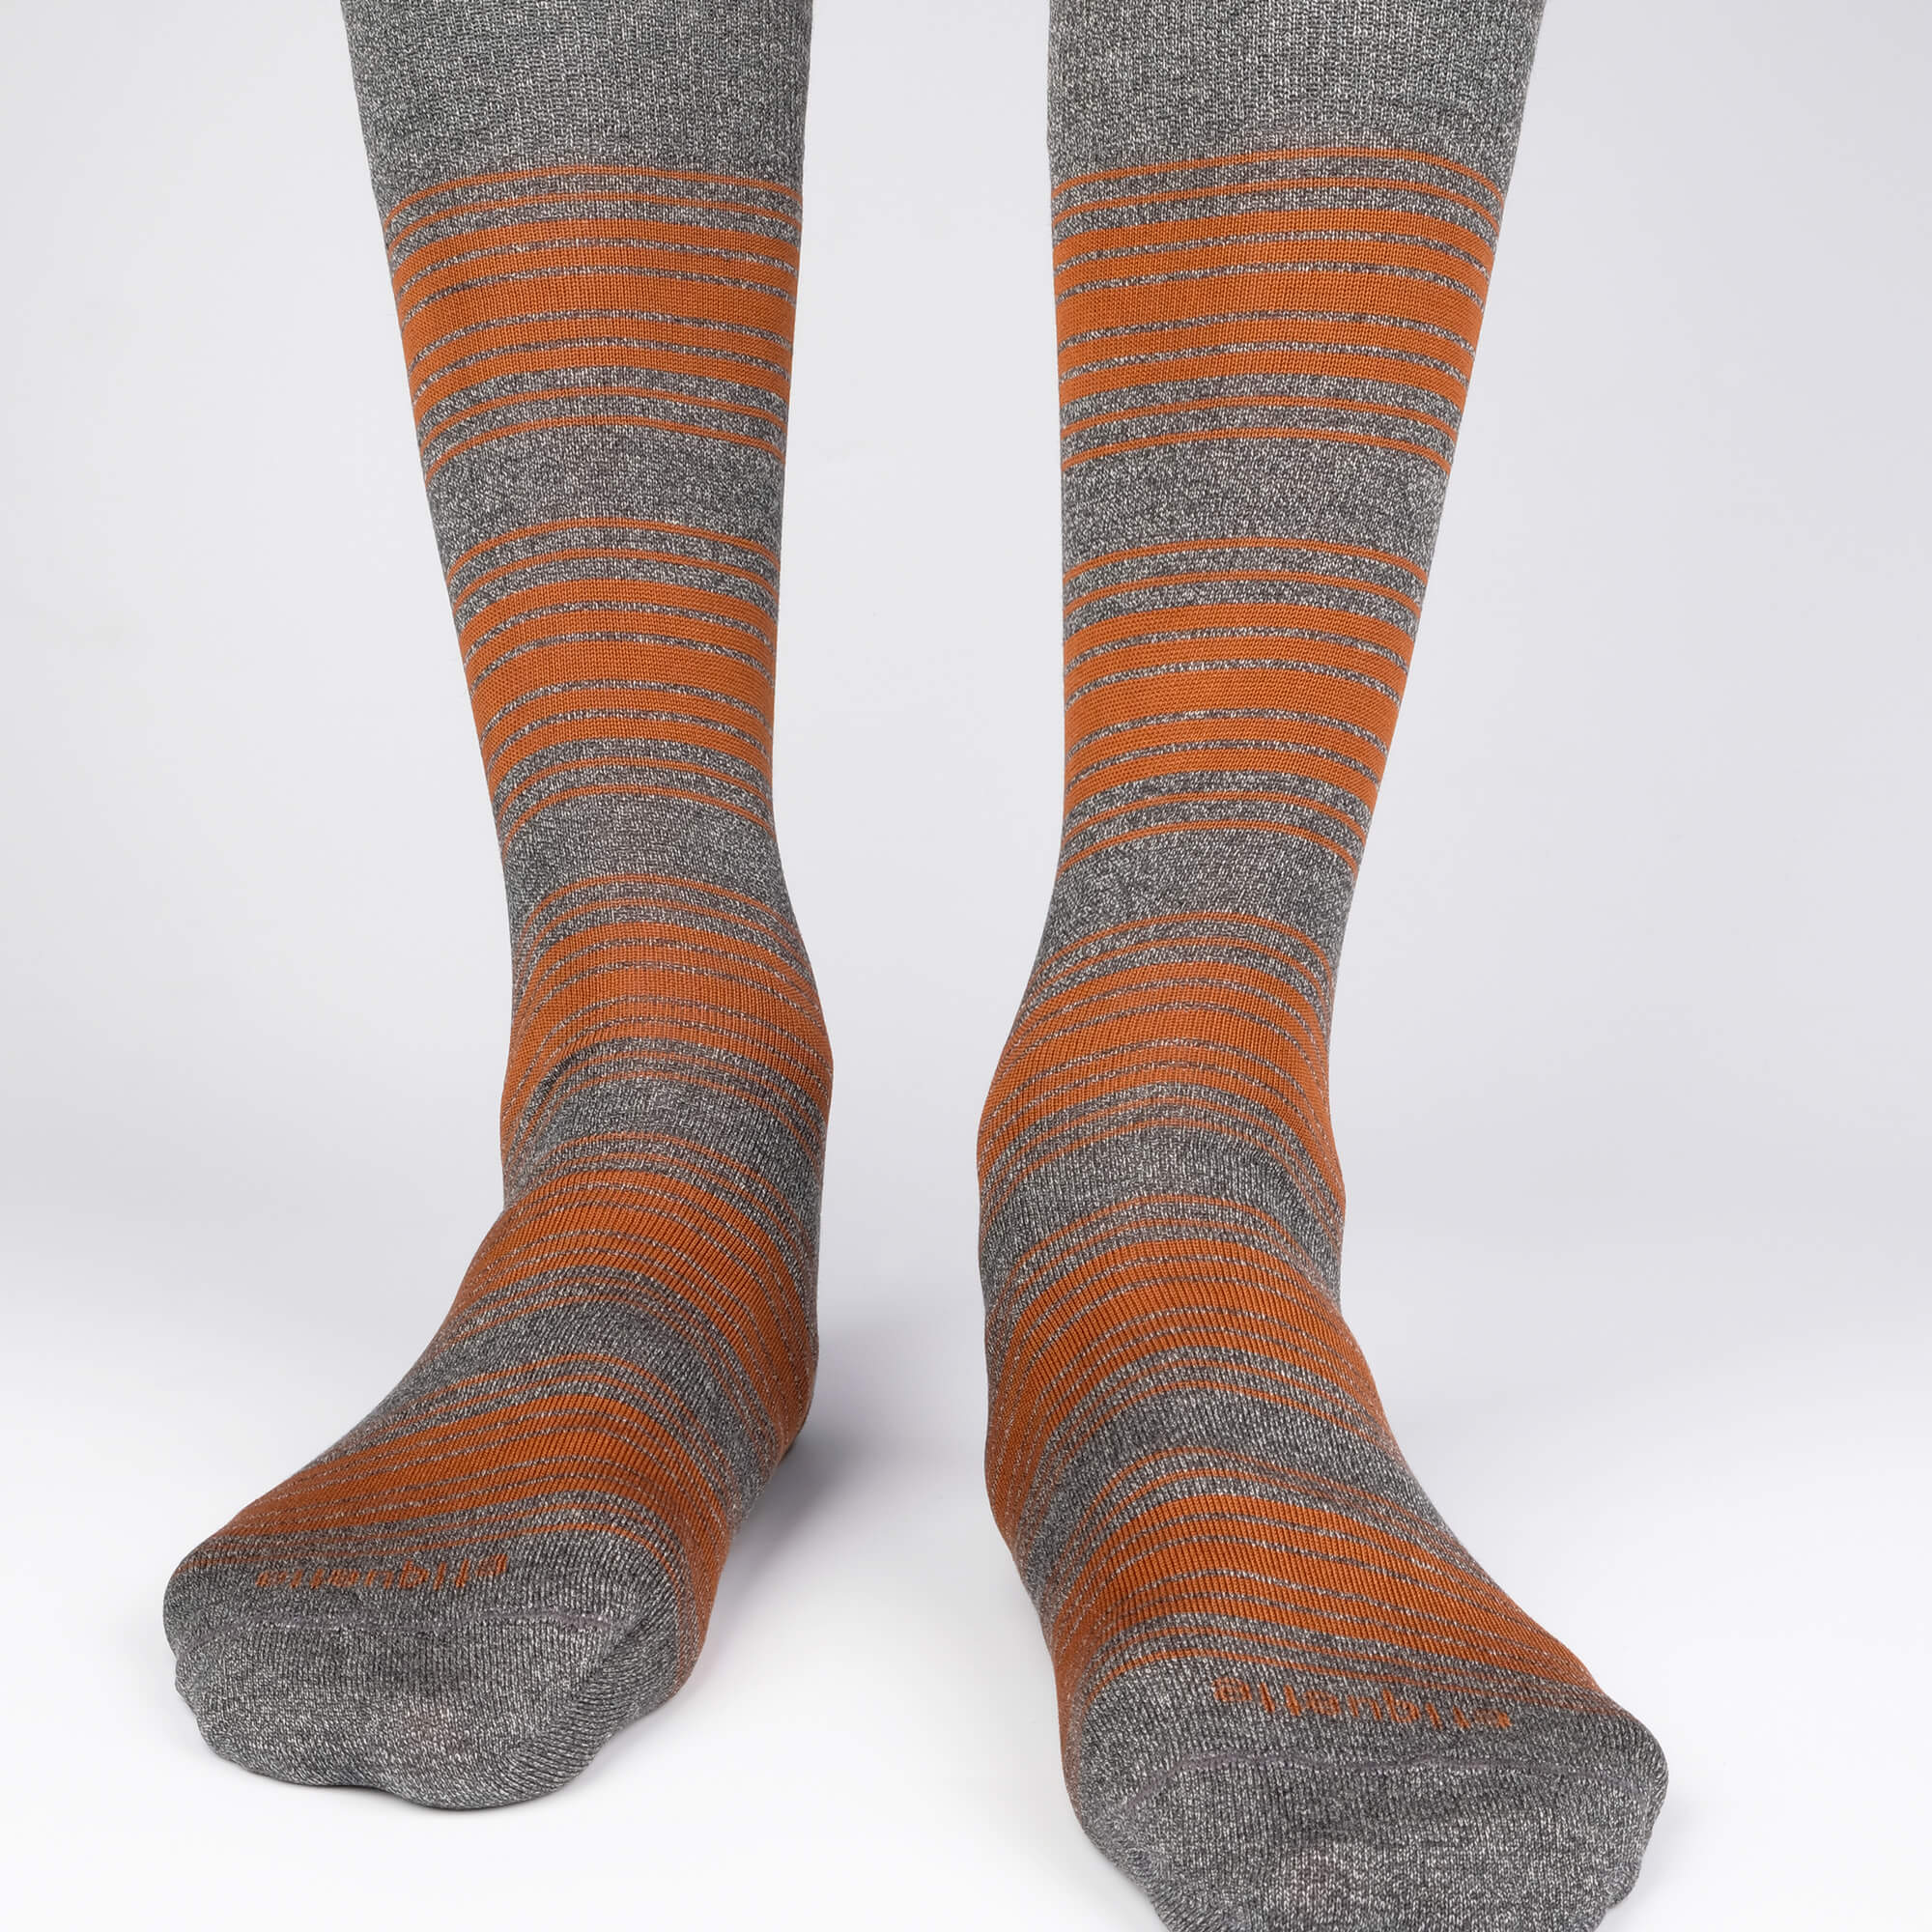 Mens Socks - Tokyo Stripes Men's Socks - Dark Grey / Brown⎪Etiquette Clothiers